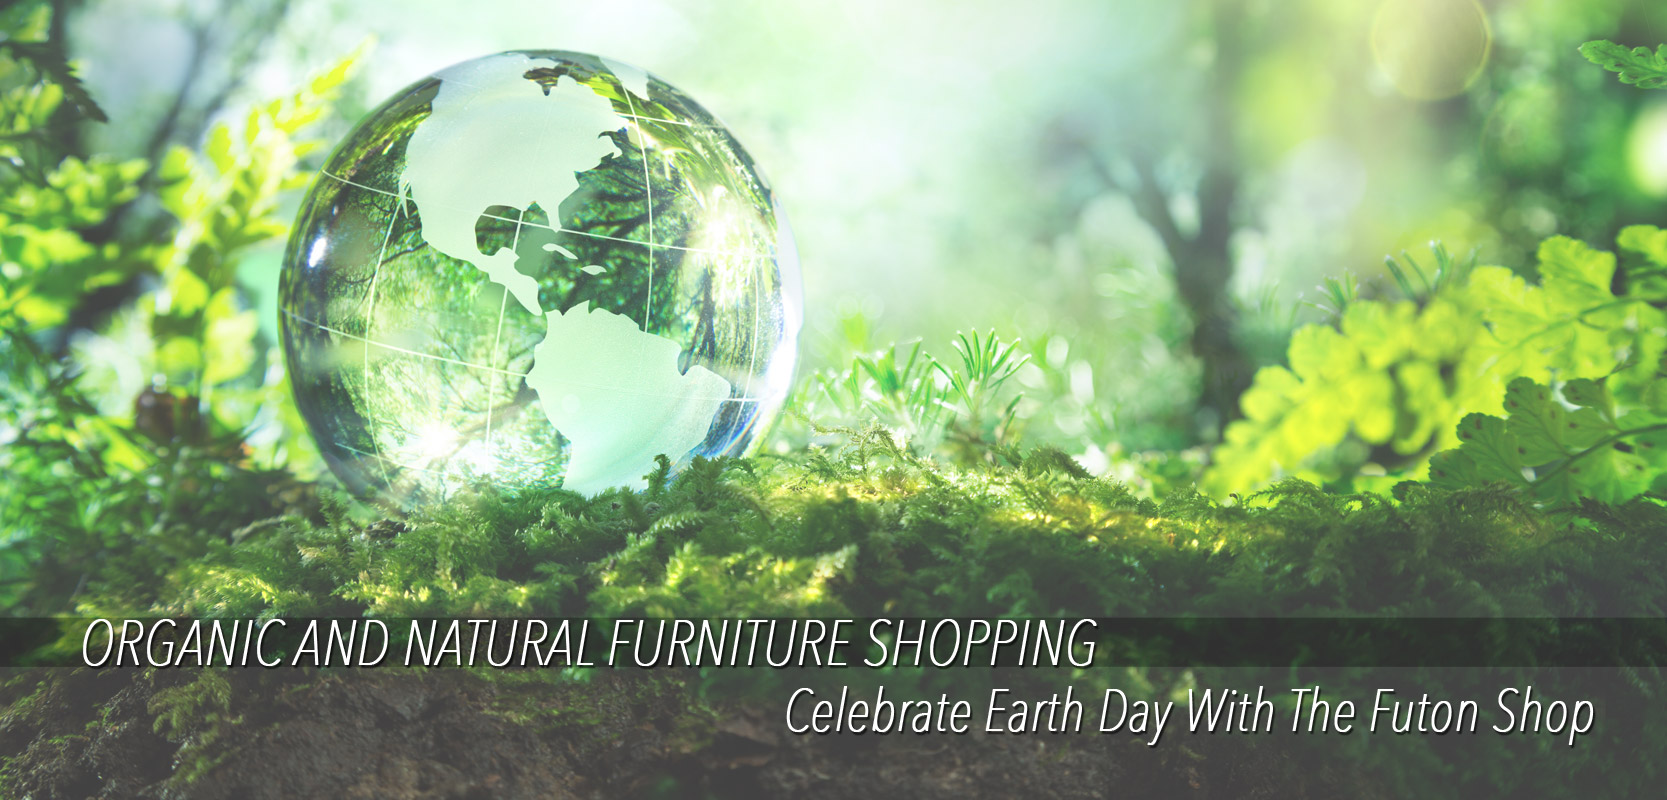 Earth Day Everyday: Checklist Home Shopping Room By Room